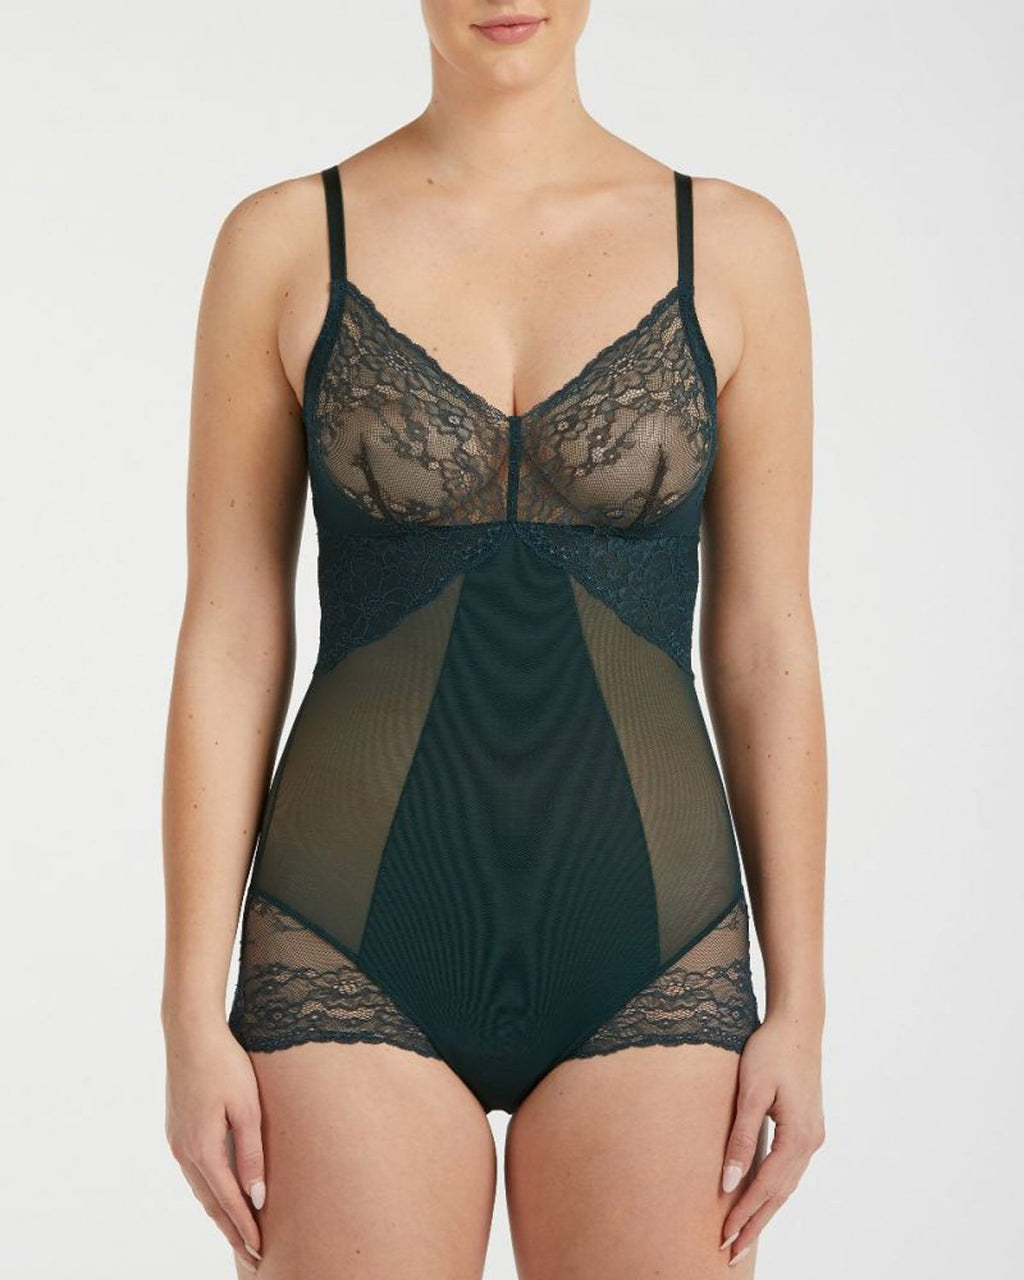 Bodysuit-Spotlight On Lace